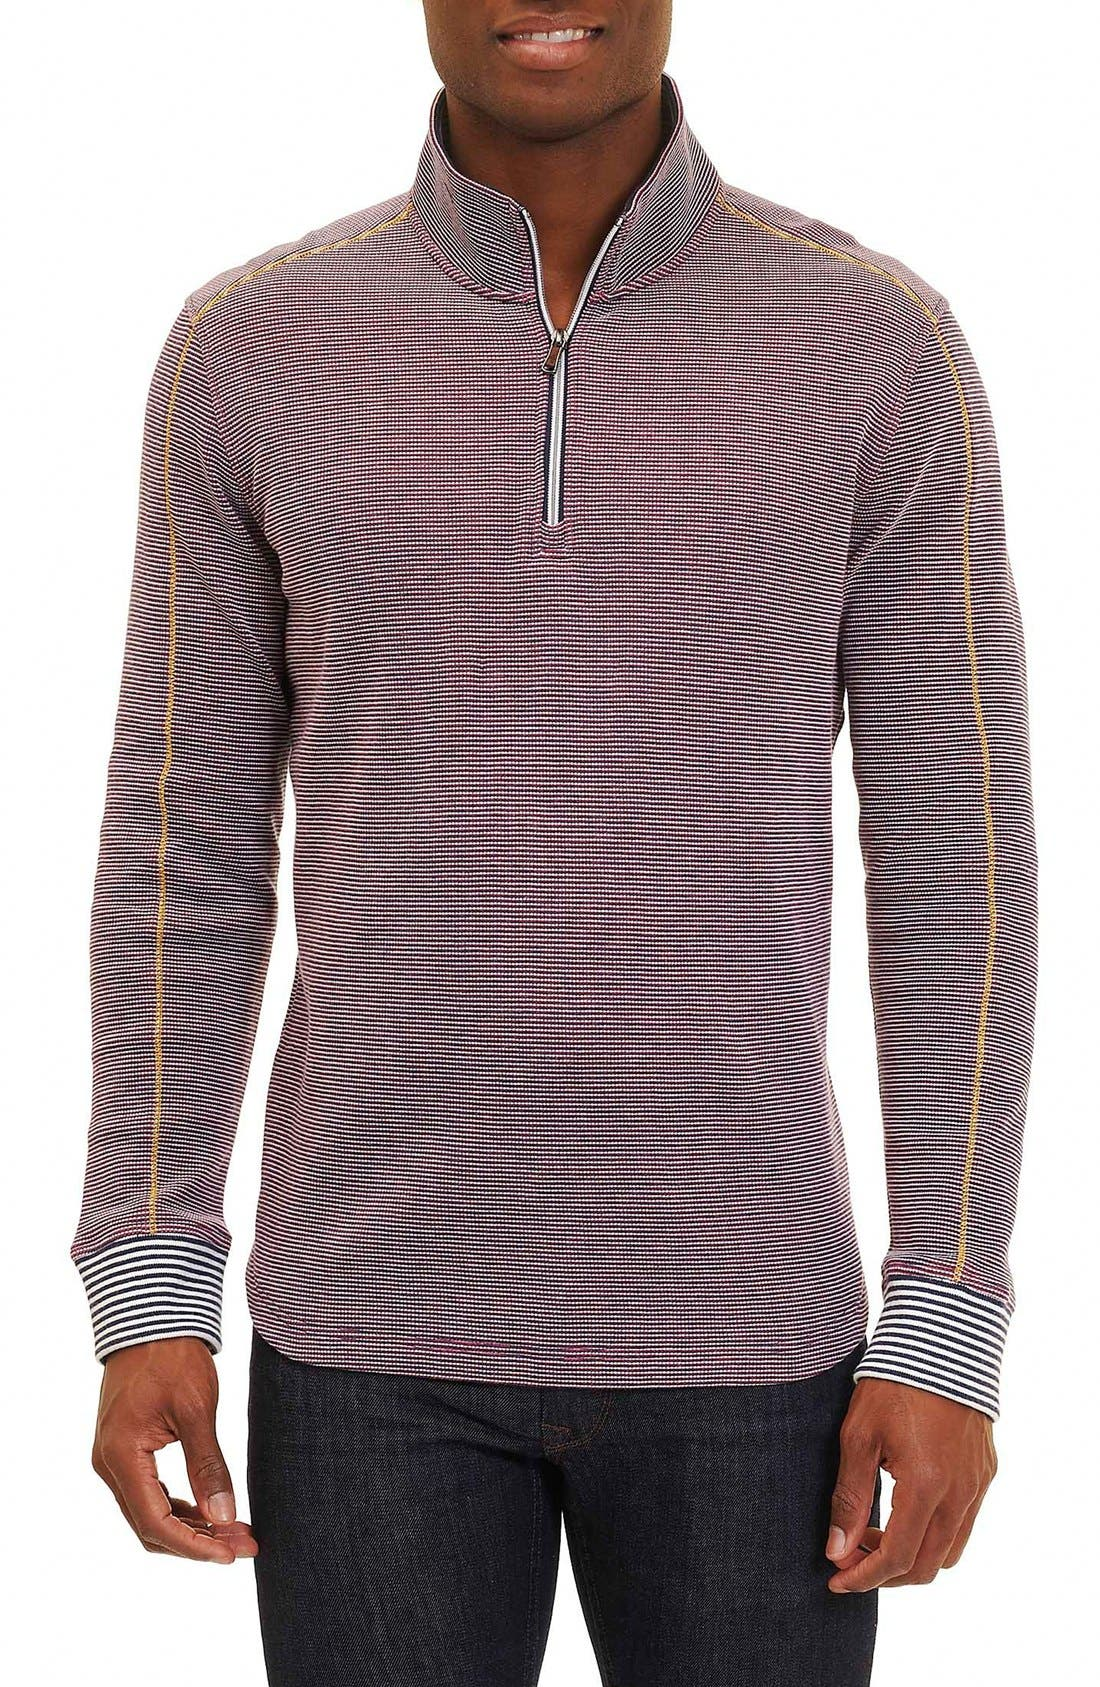 Poole Regular Fit Quarter Zip Pullover,                             Main thumbnail 1, color,                             Navy